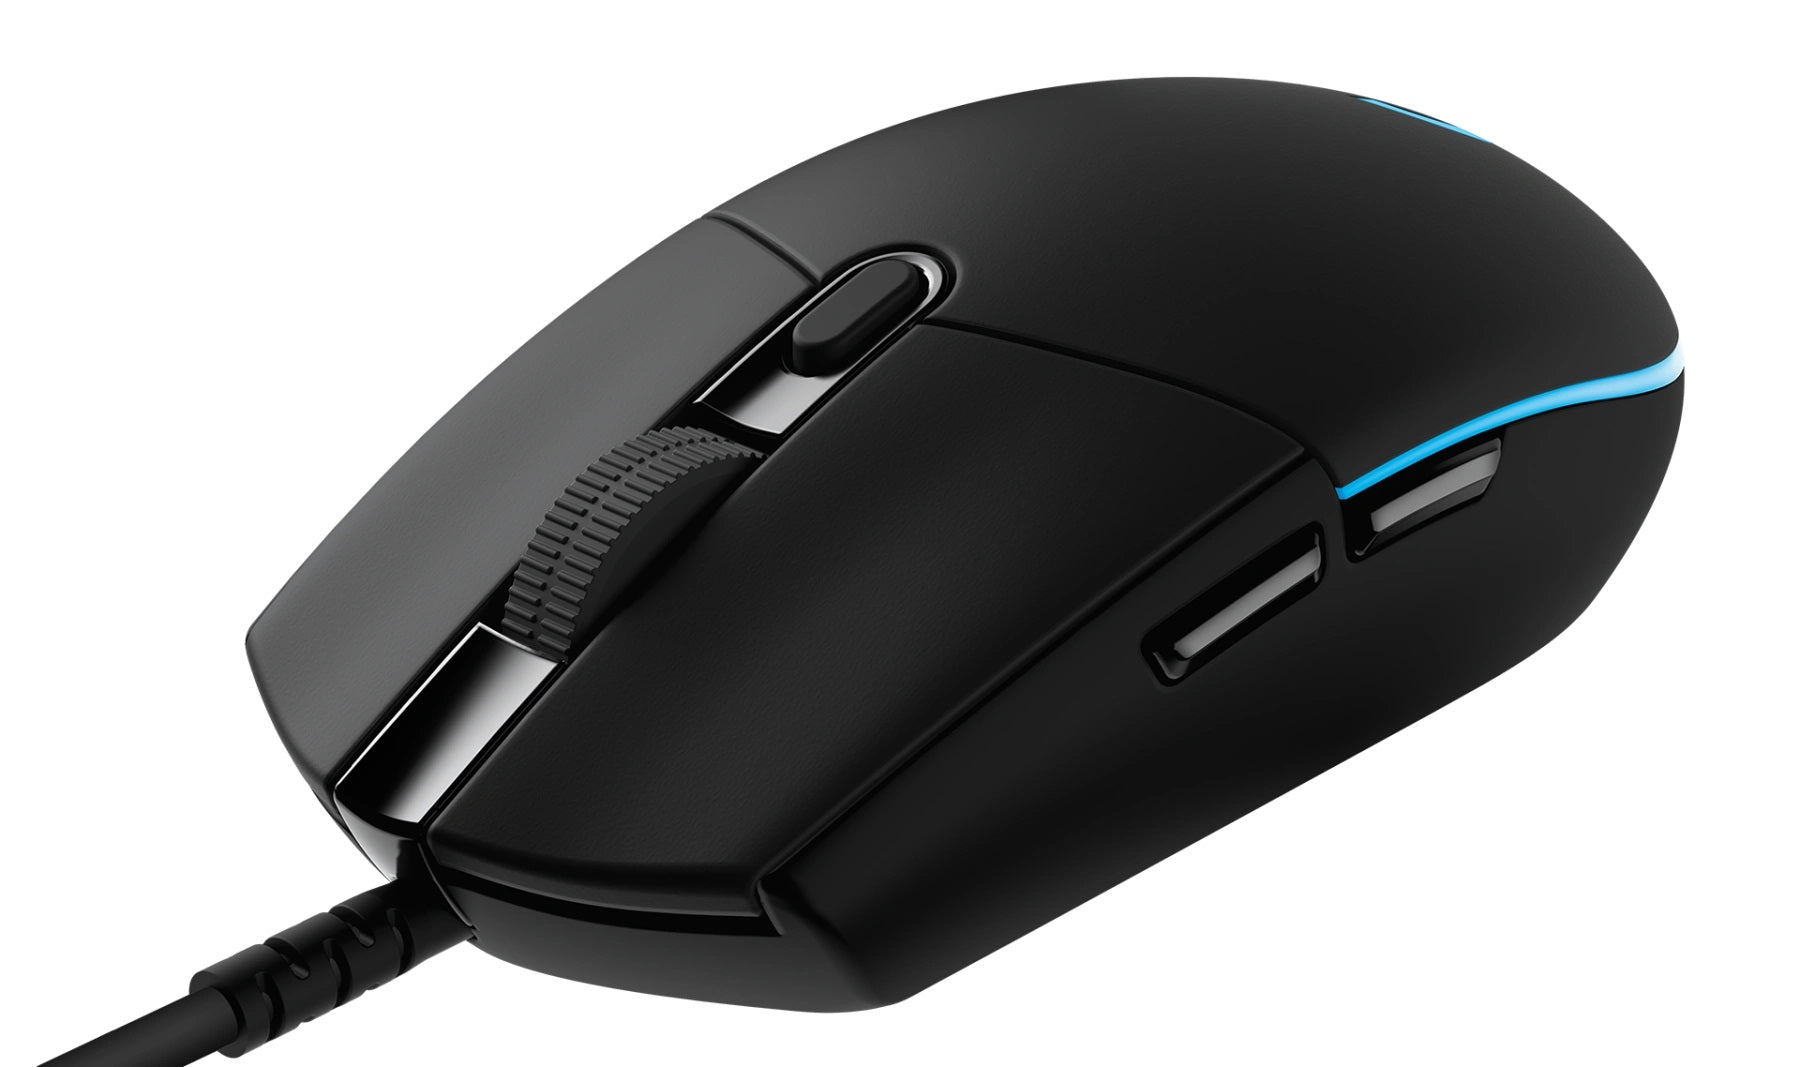 Logitech G Pro hero Wired Gaming Mouse with classic look